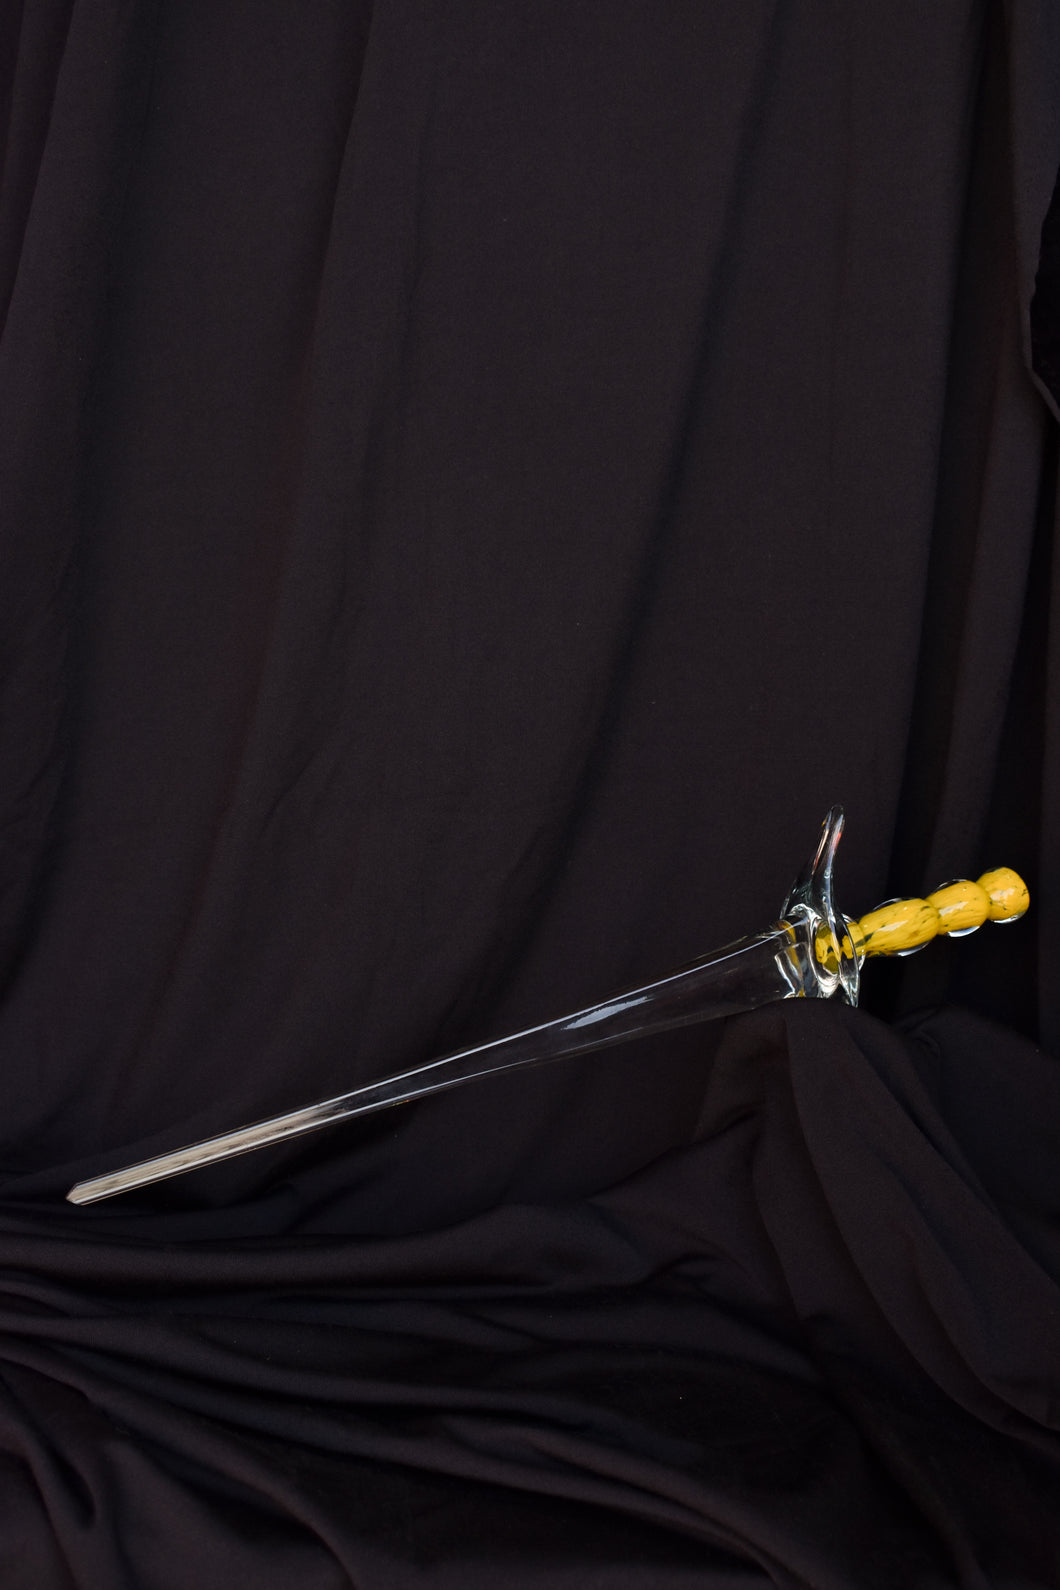 Decorative glass sword - pick up only